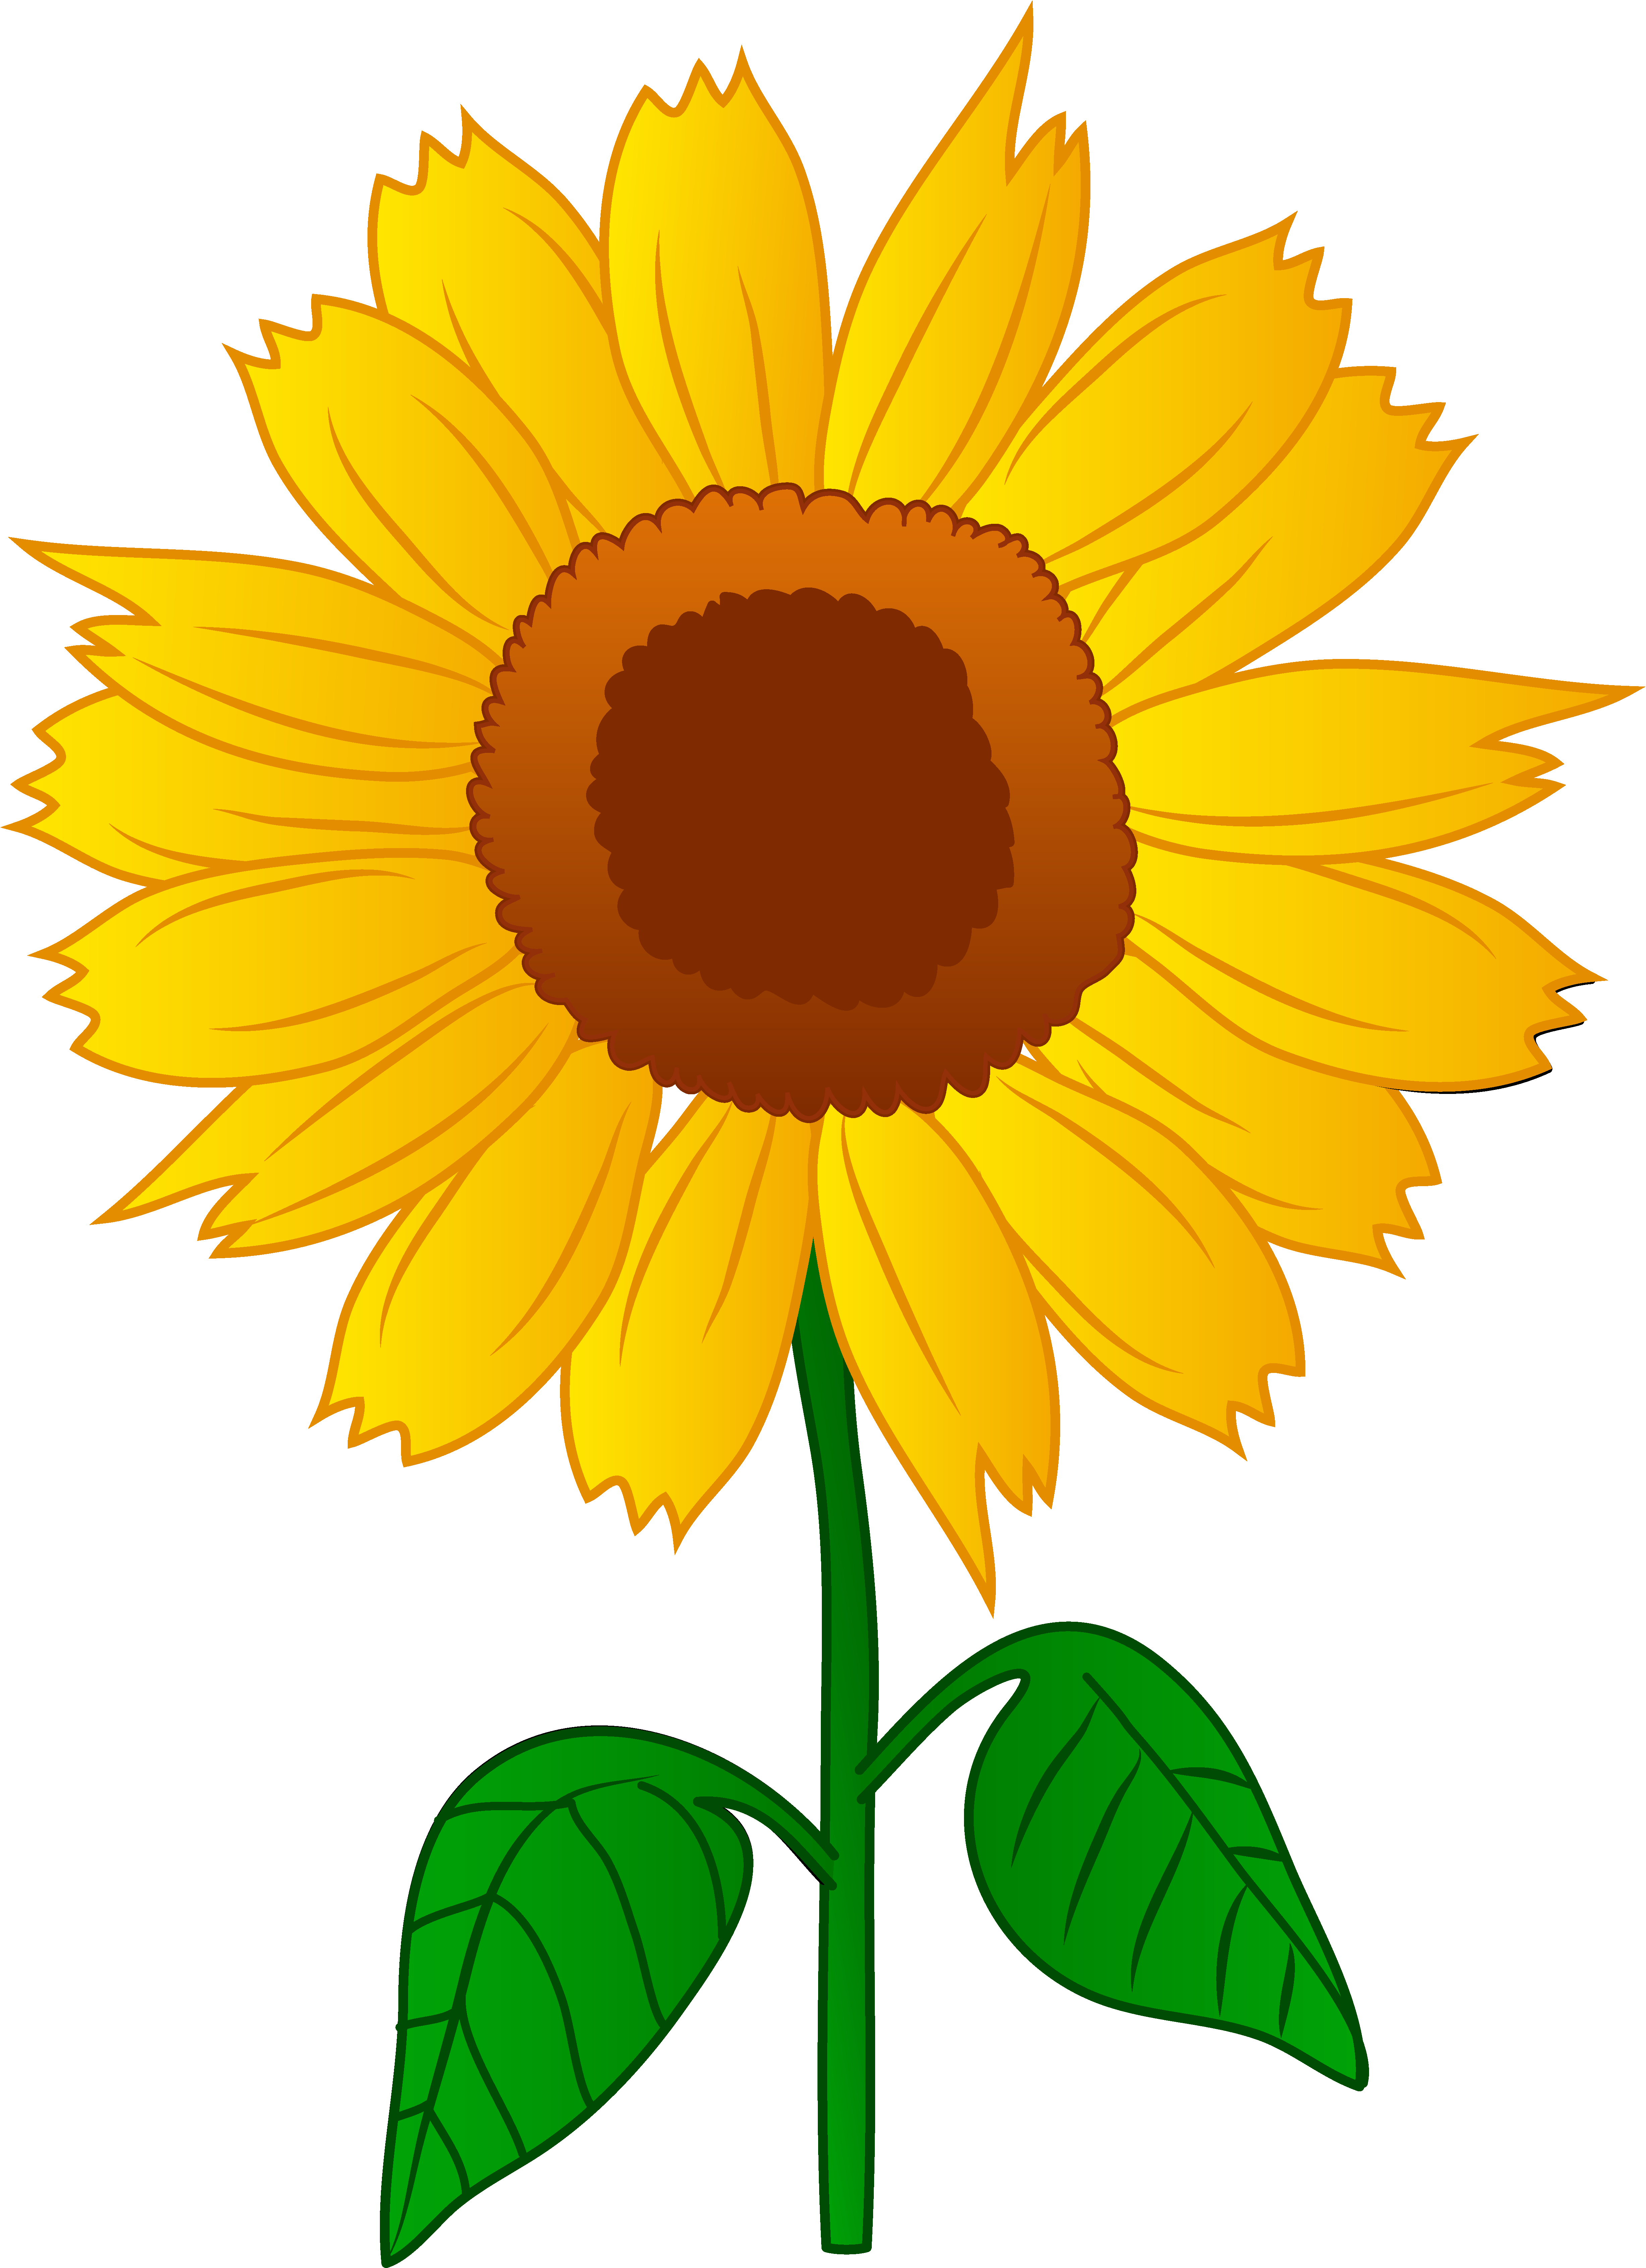 Free Free Sunflower Clipart, Download Free Clip Art, Free.